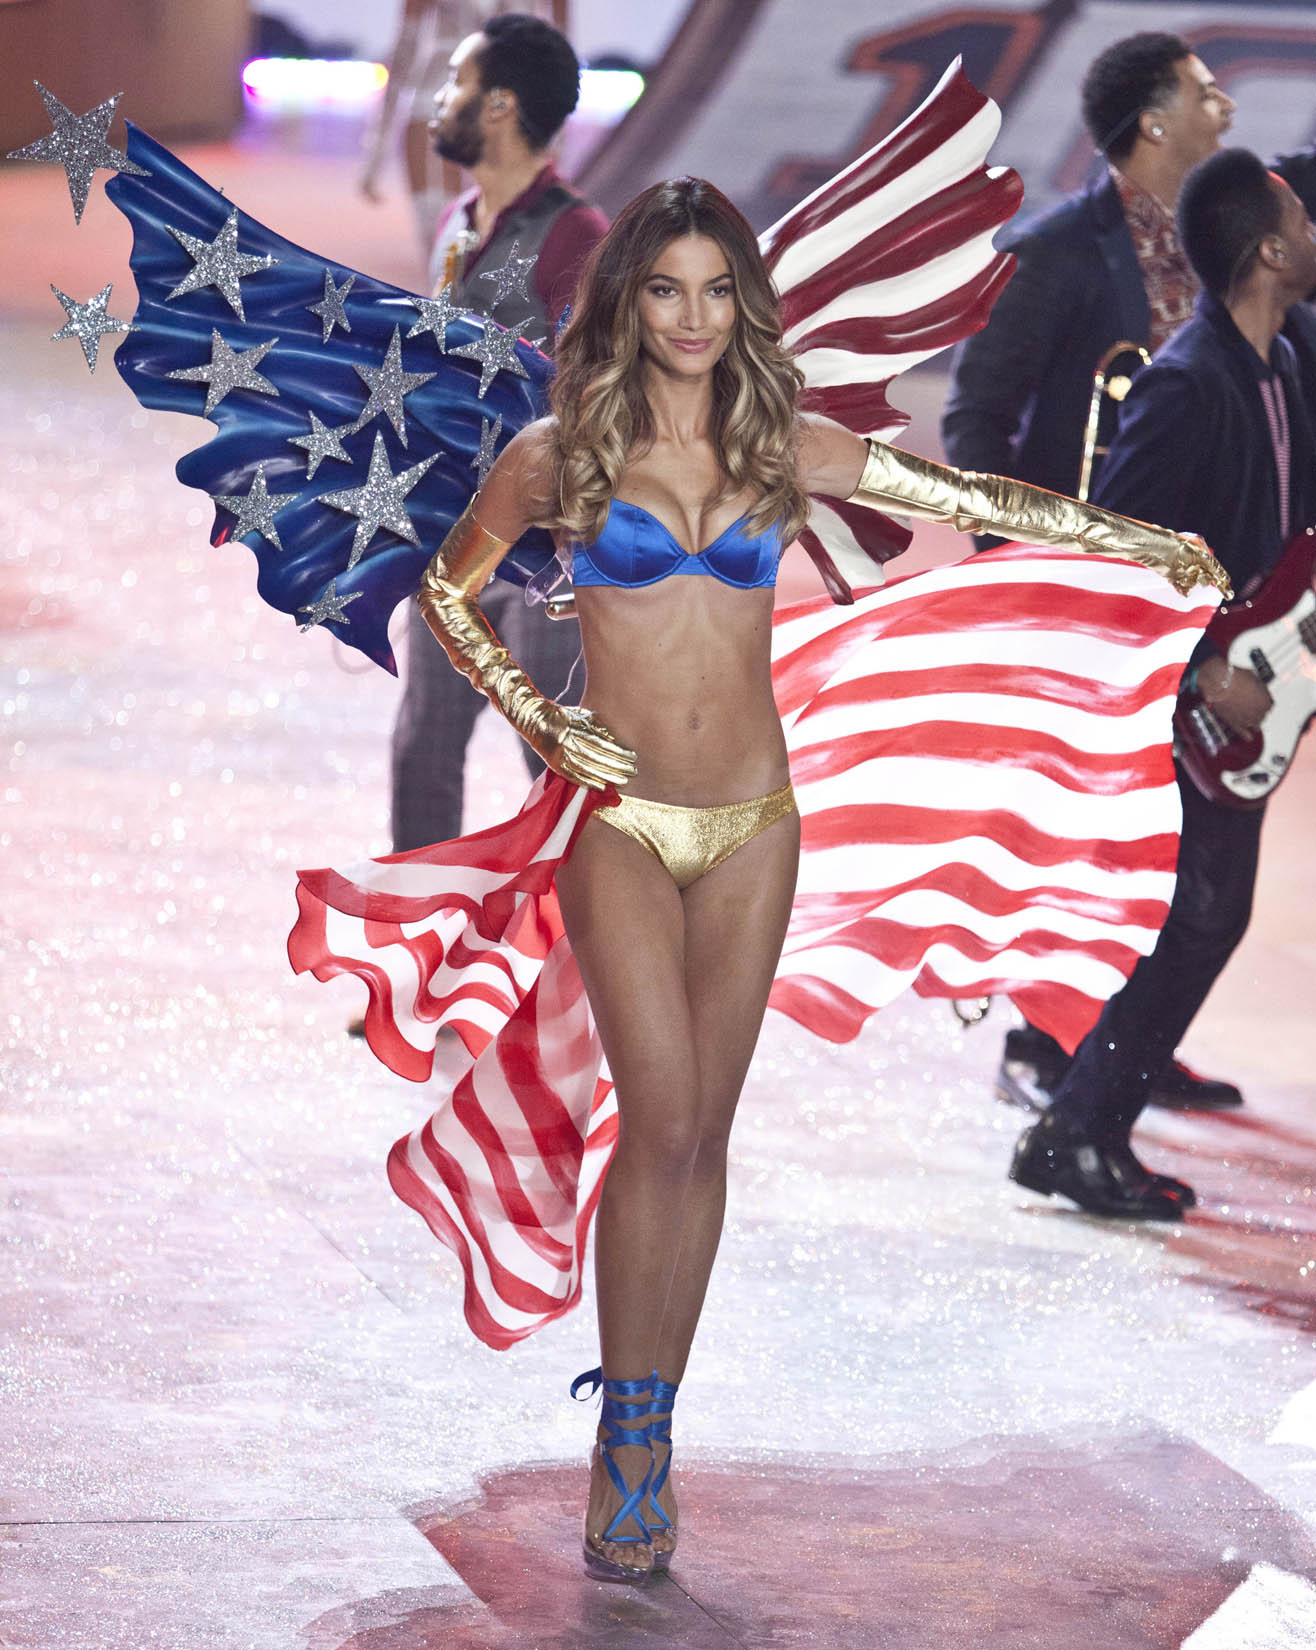 Lily Aldridge at the Victoria's Secret Fashion Show 2012